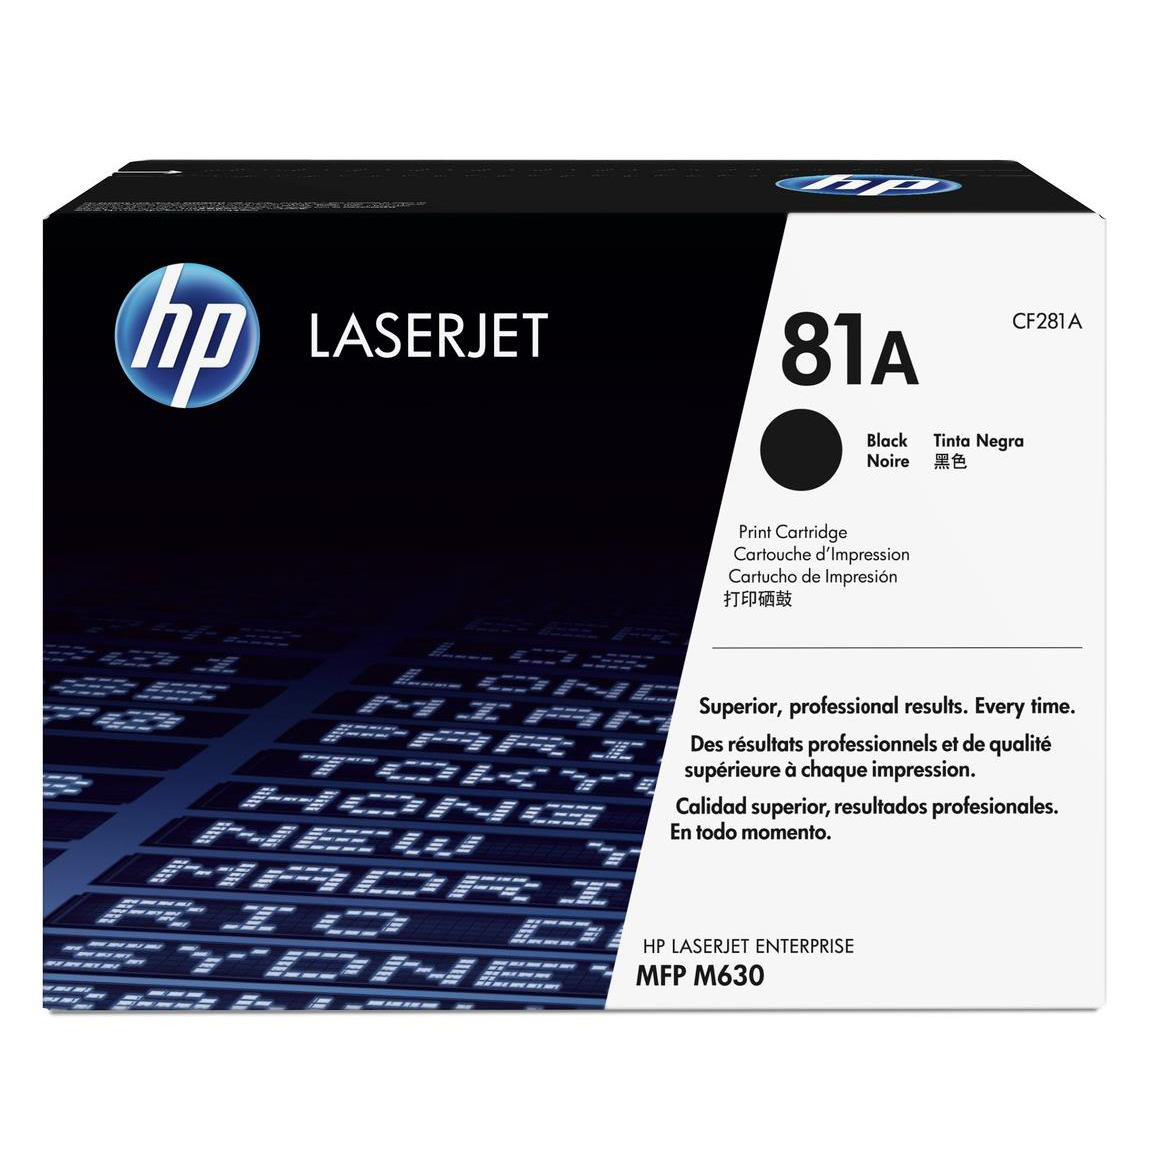 HP 81A Black LaserJet Toner Cartridge Page Life 10500pp Black Ref CF281A